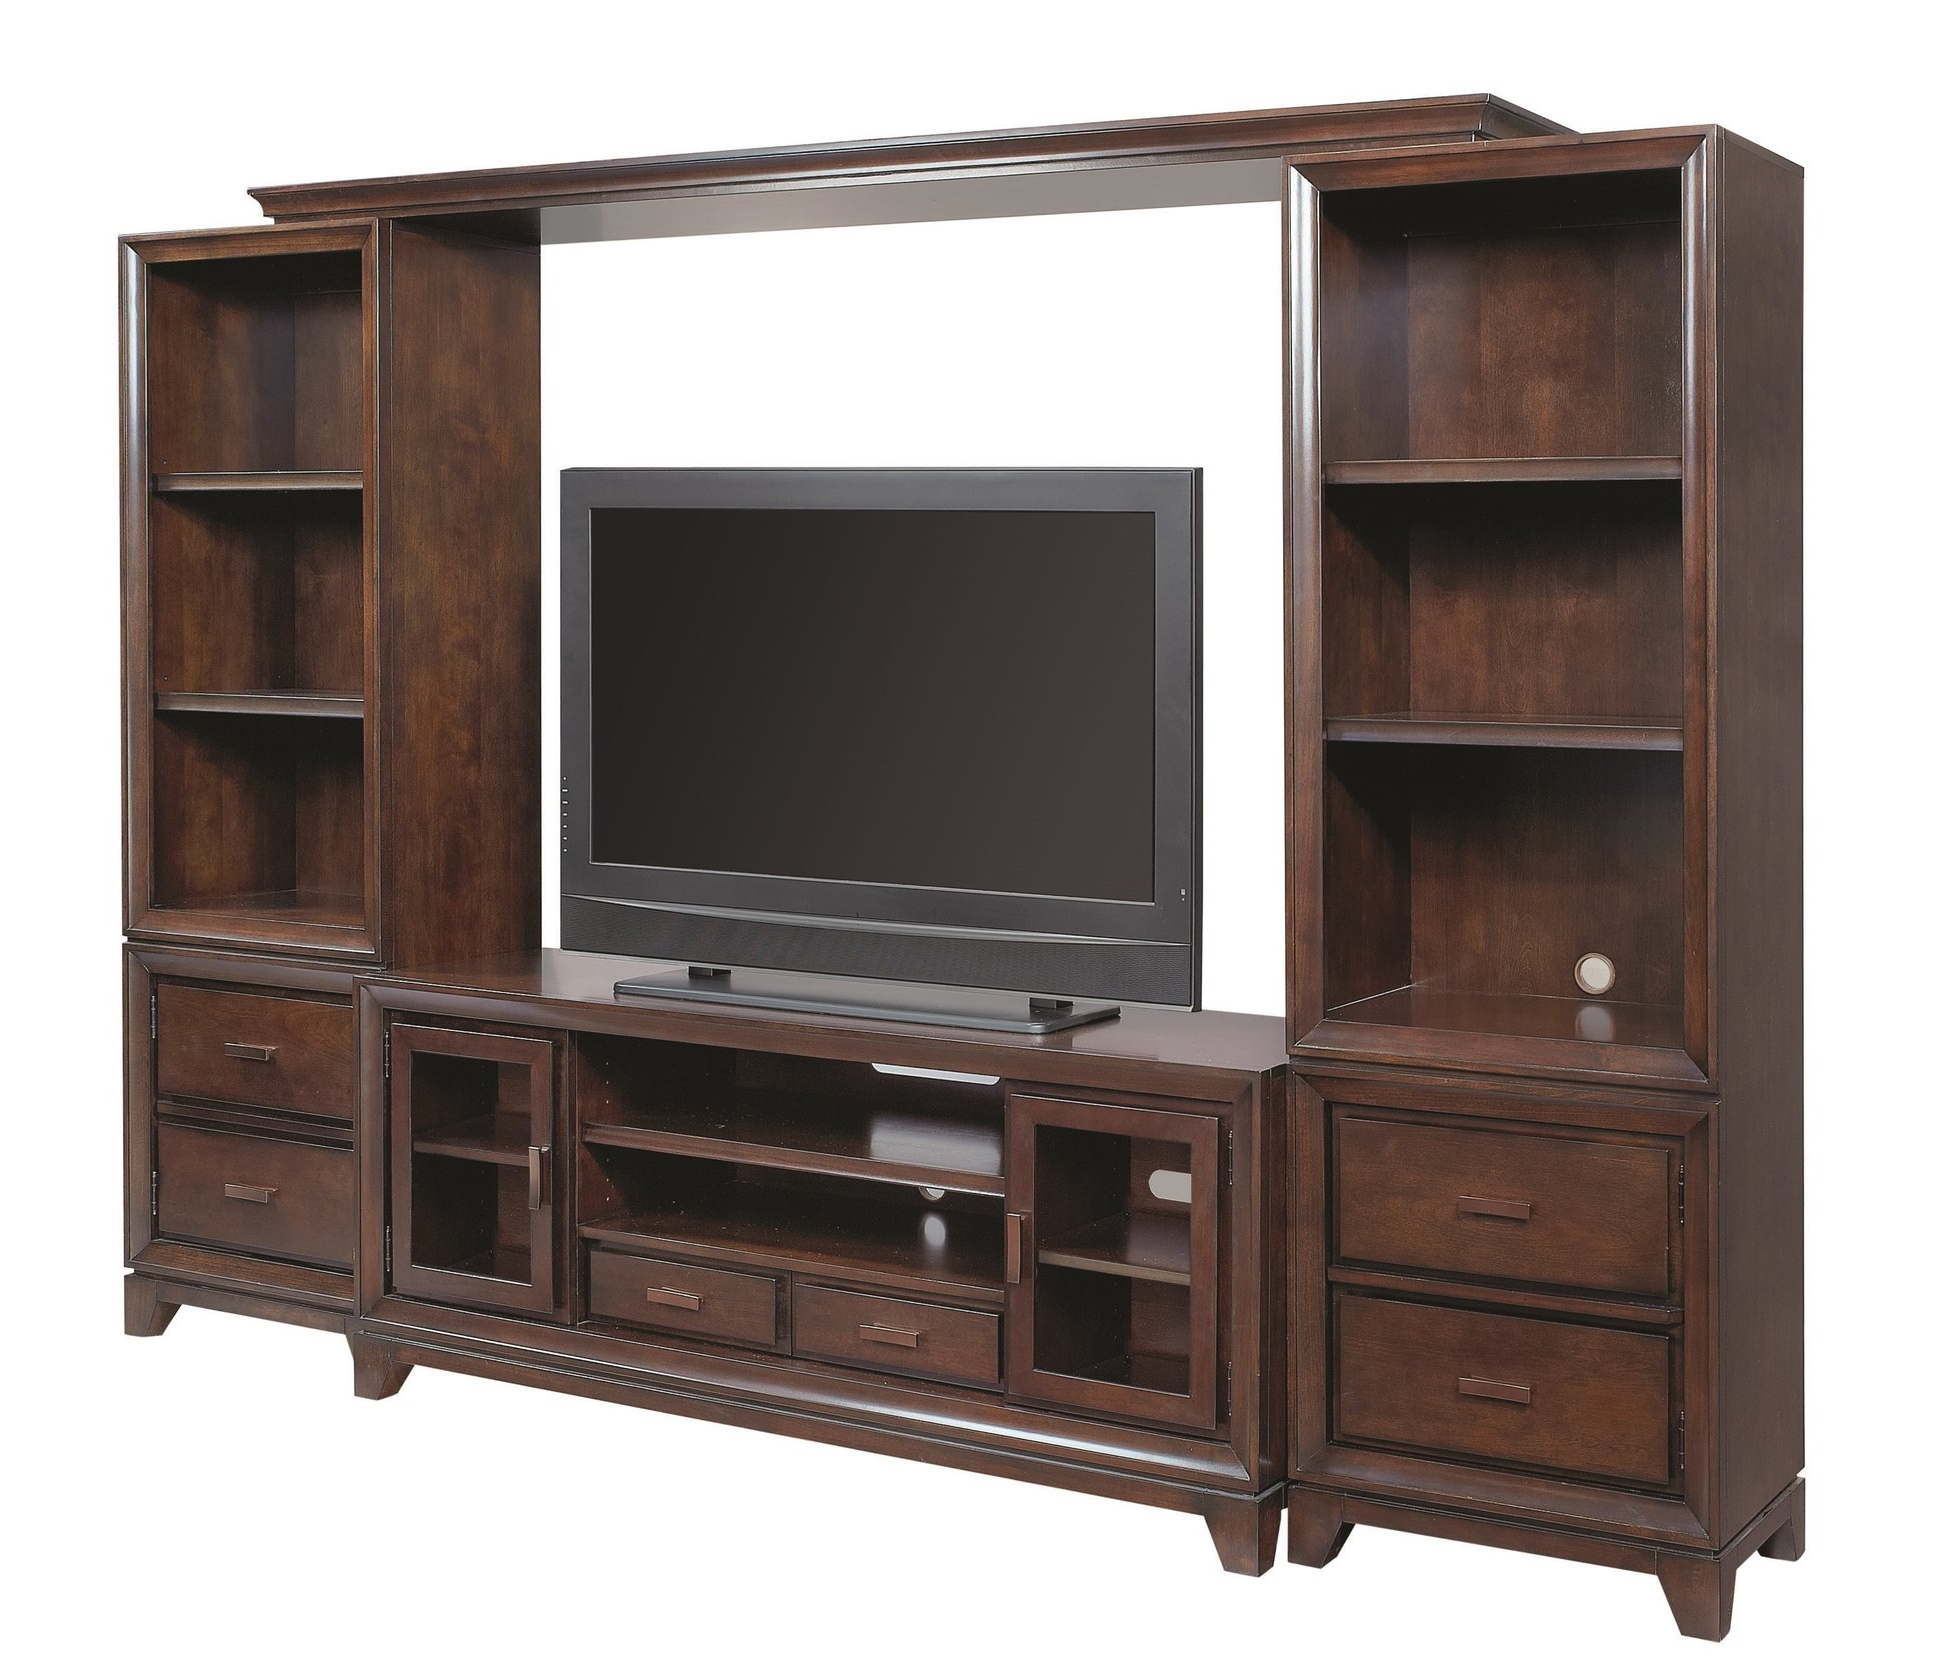 """The Viewline 65"""" Entertainment Wall Console Within Well Known Casey May Tv Stands For Tvs Up To 70"""" (View 10 of 25)"""